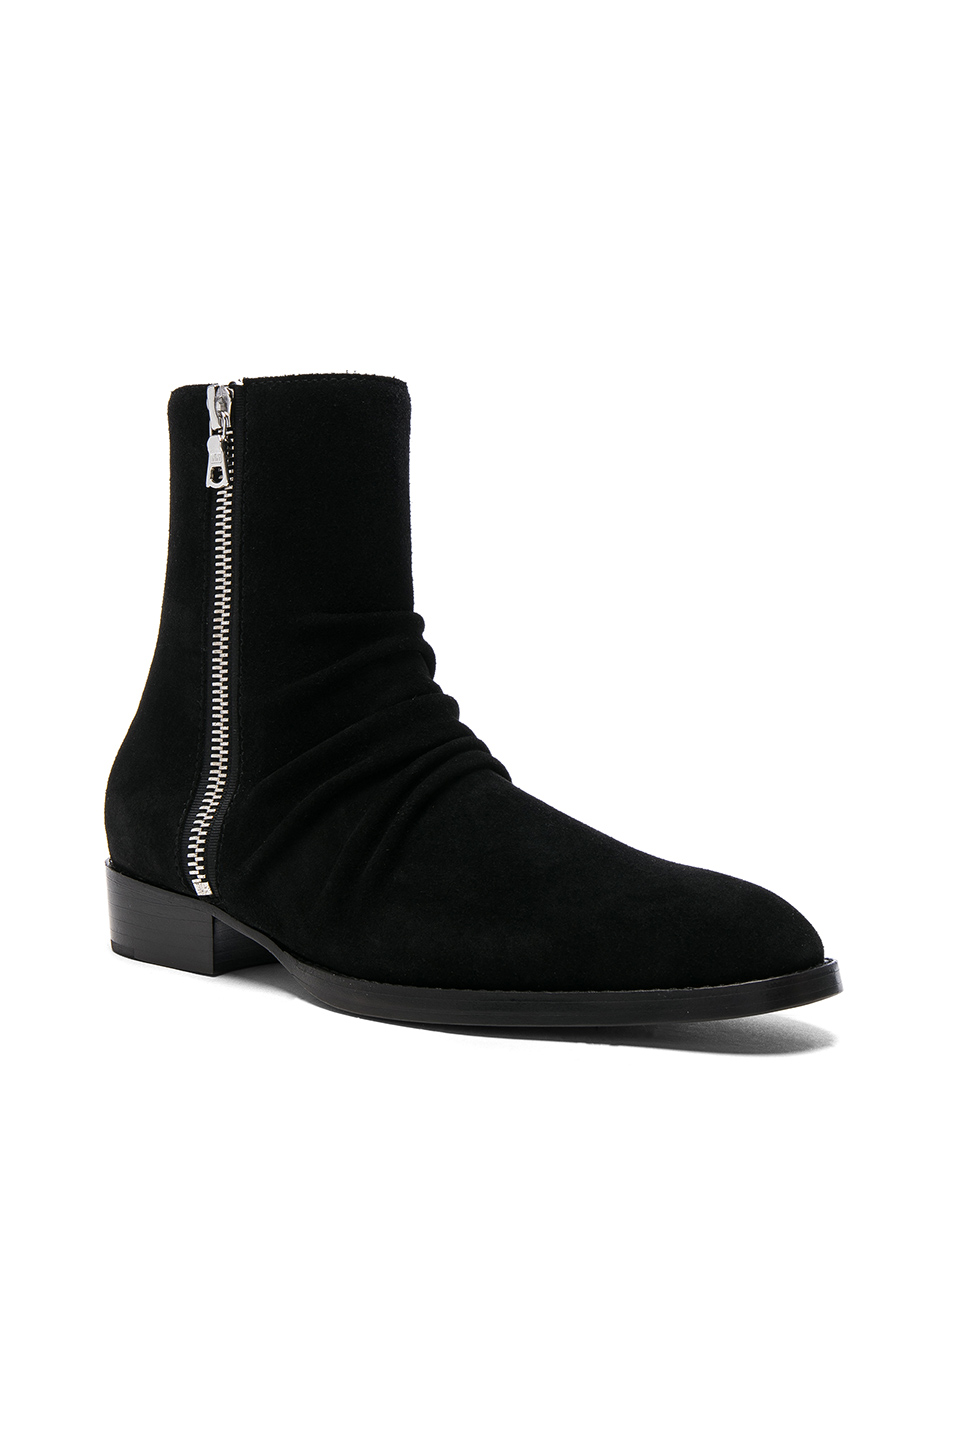 Amiri Suede Skinny Stack Boots in Black